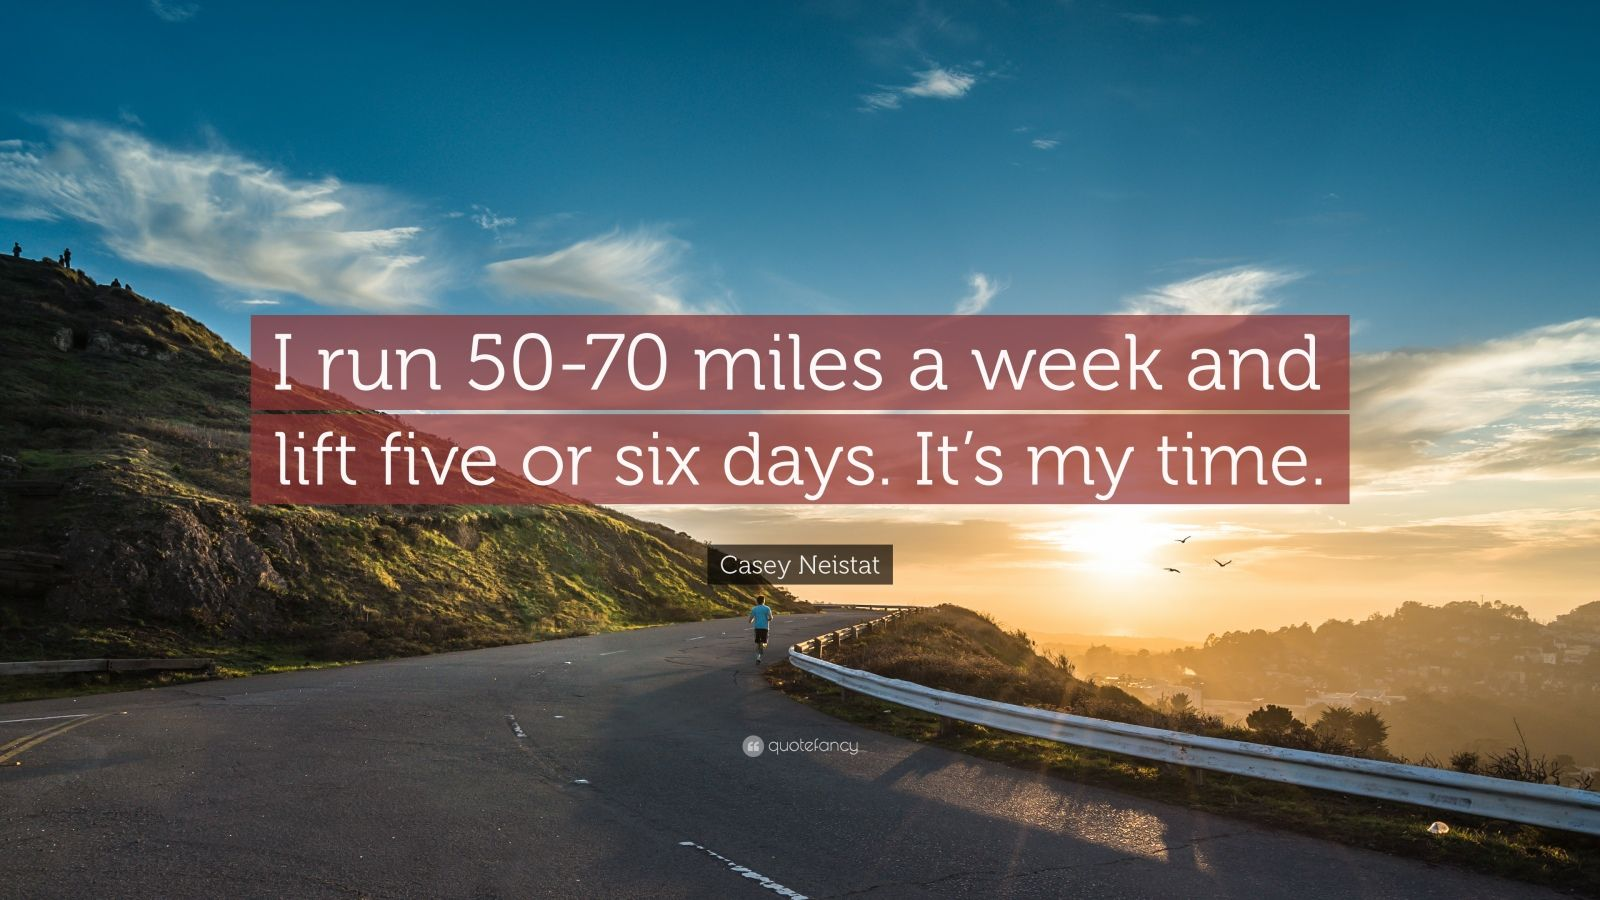 """Casey Neistat Quote: """"I run 50-70 miles a week and lift five or six days. It's my time. """""""